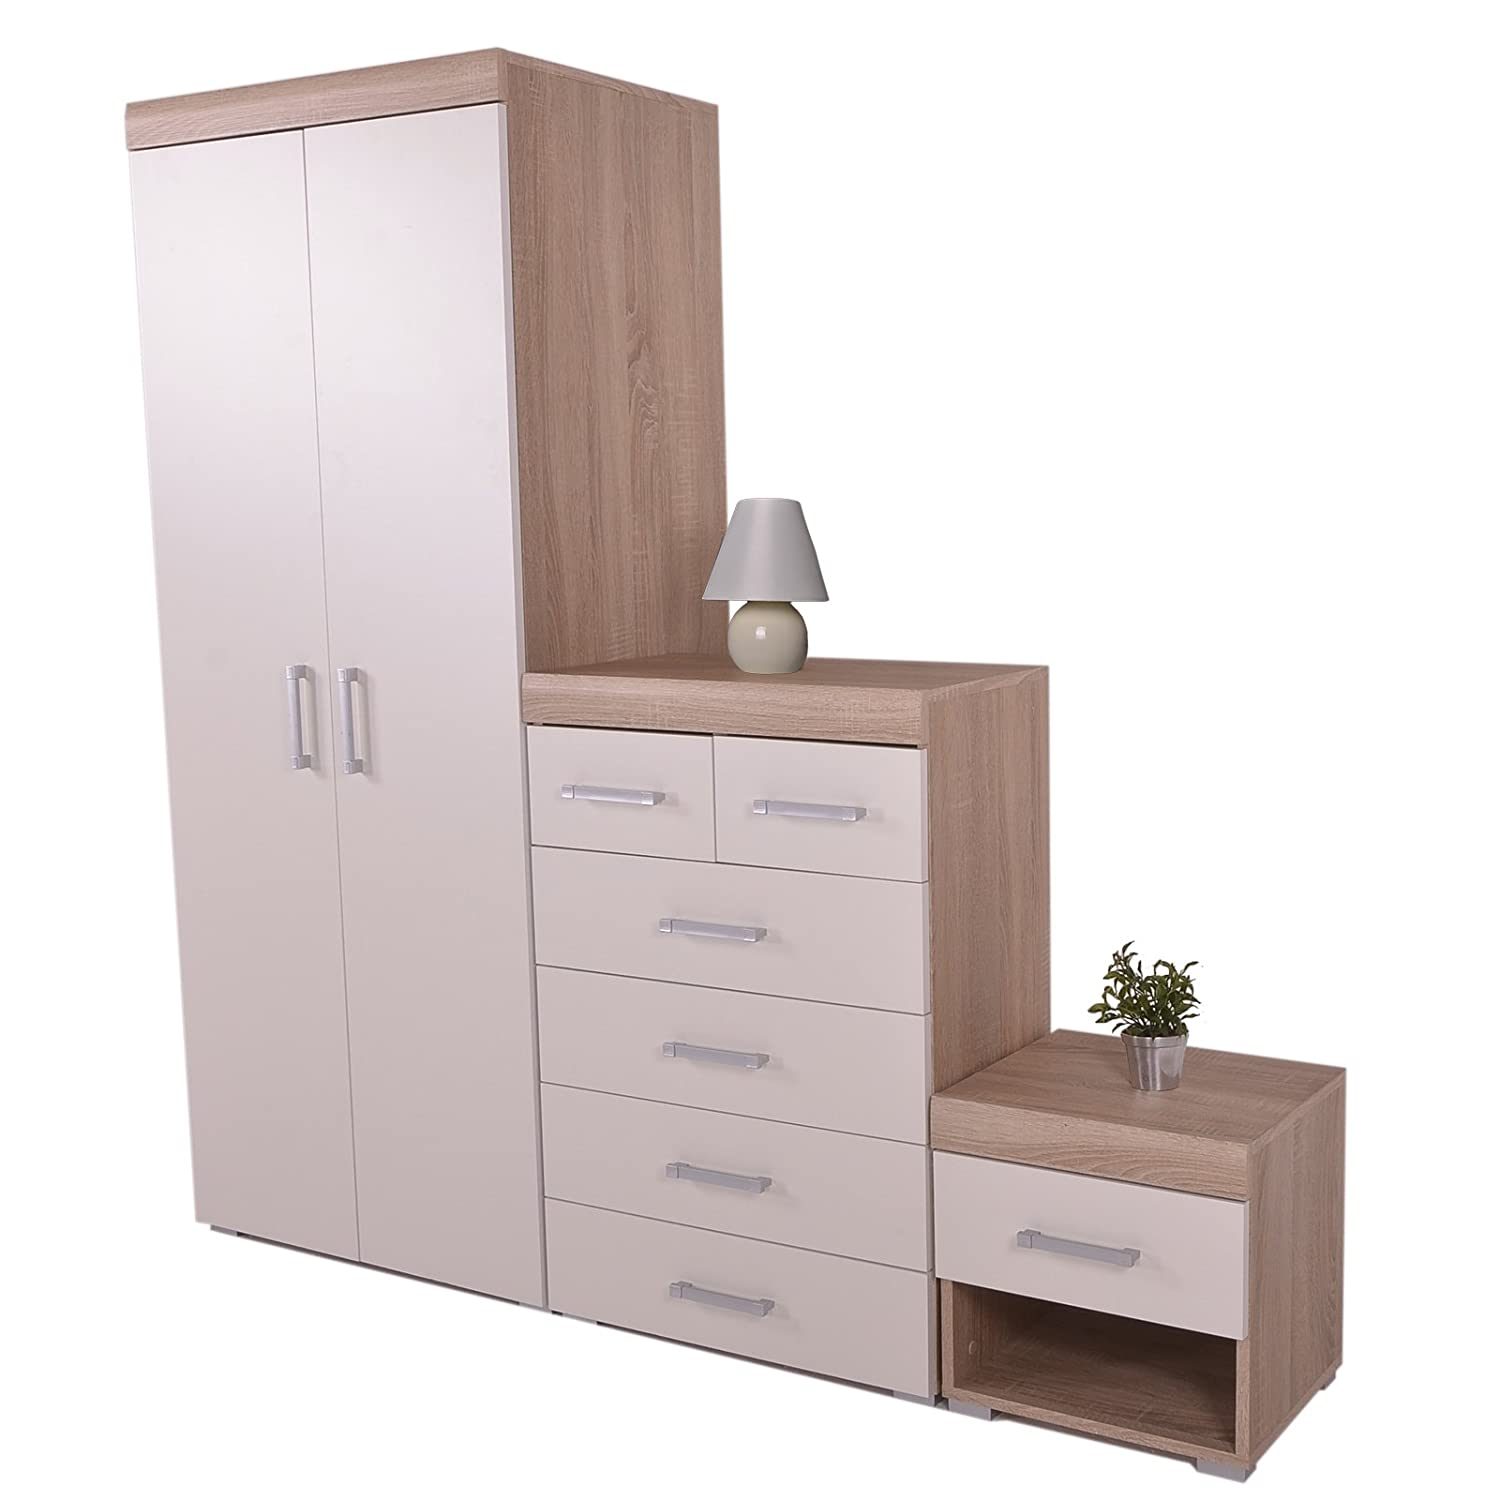 DP 3 Piece Bedroom Set 4+2 Chest Drawers Bedside Table & Wardrobe White & Sanoma Oak